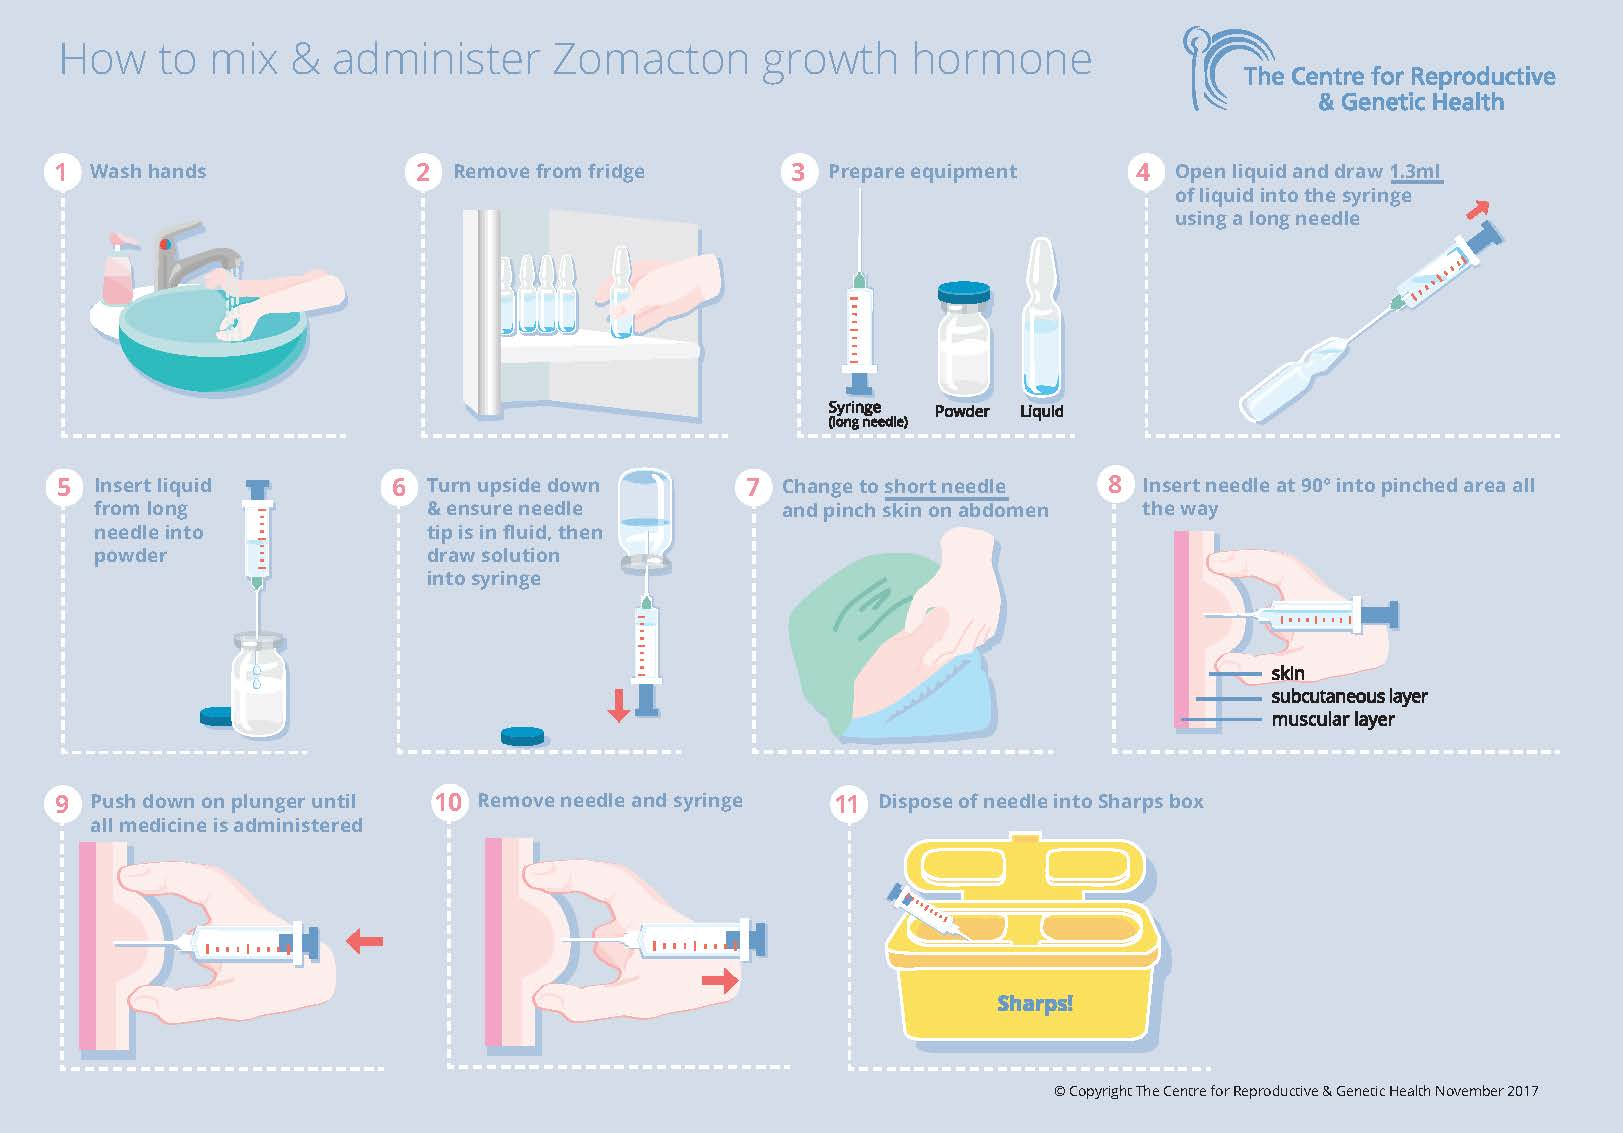 Zomacton growth hormone injection card